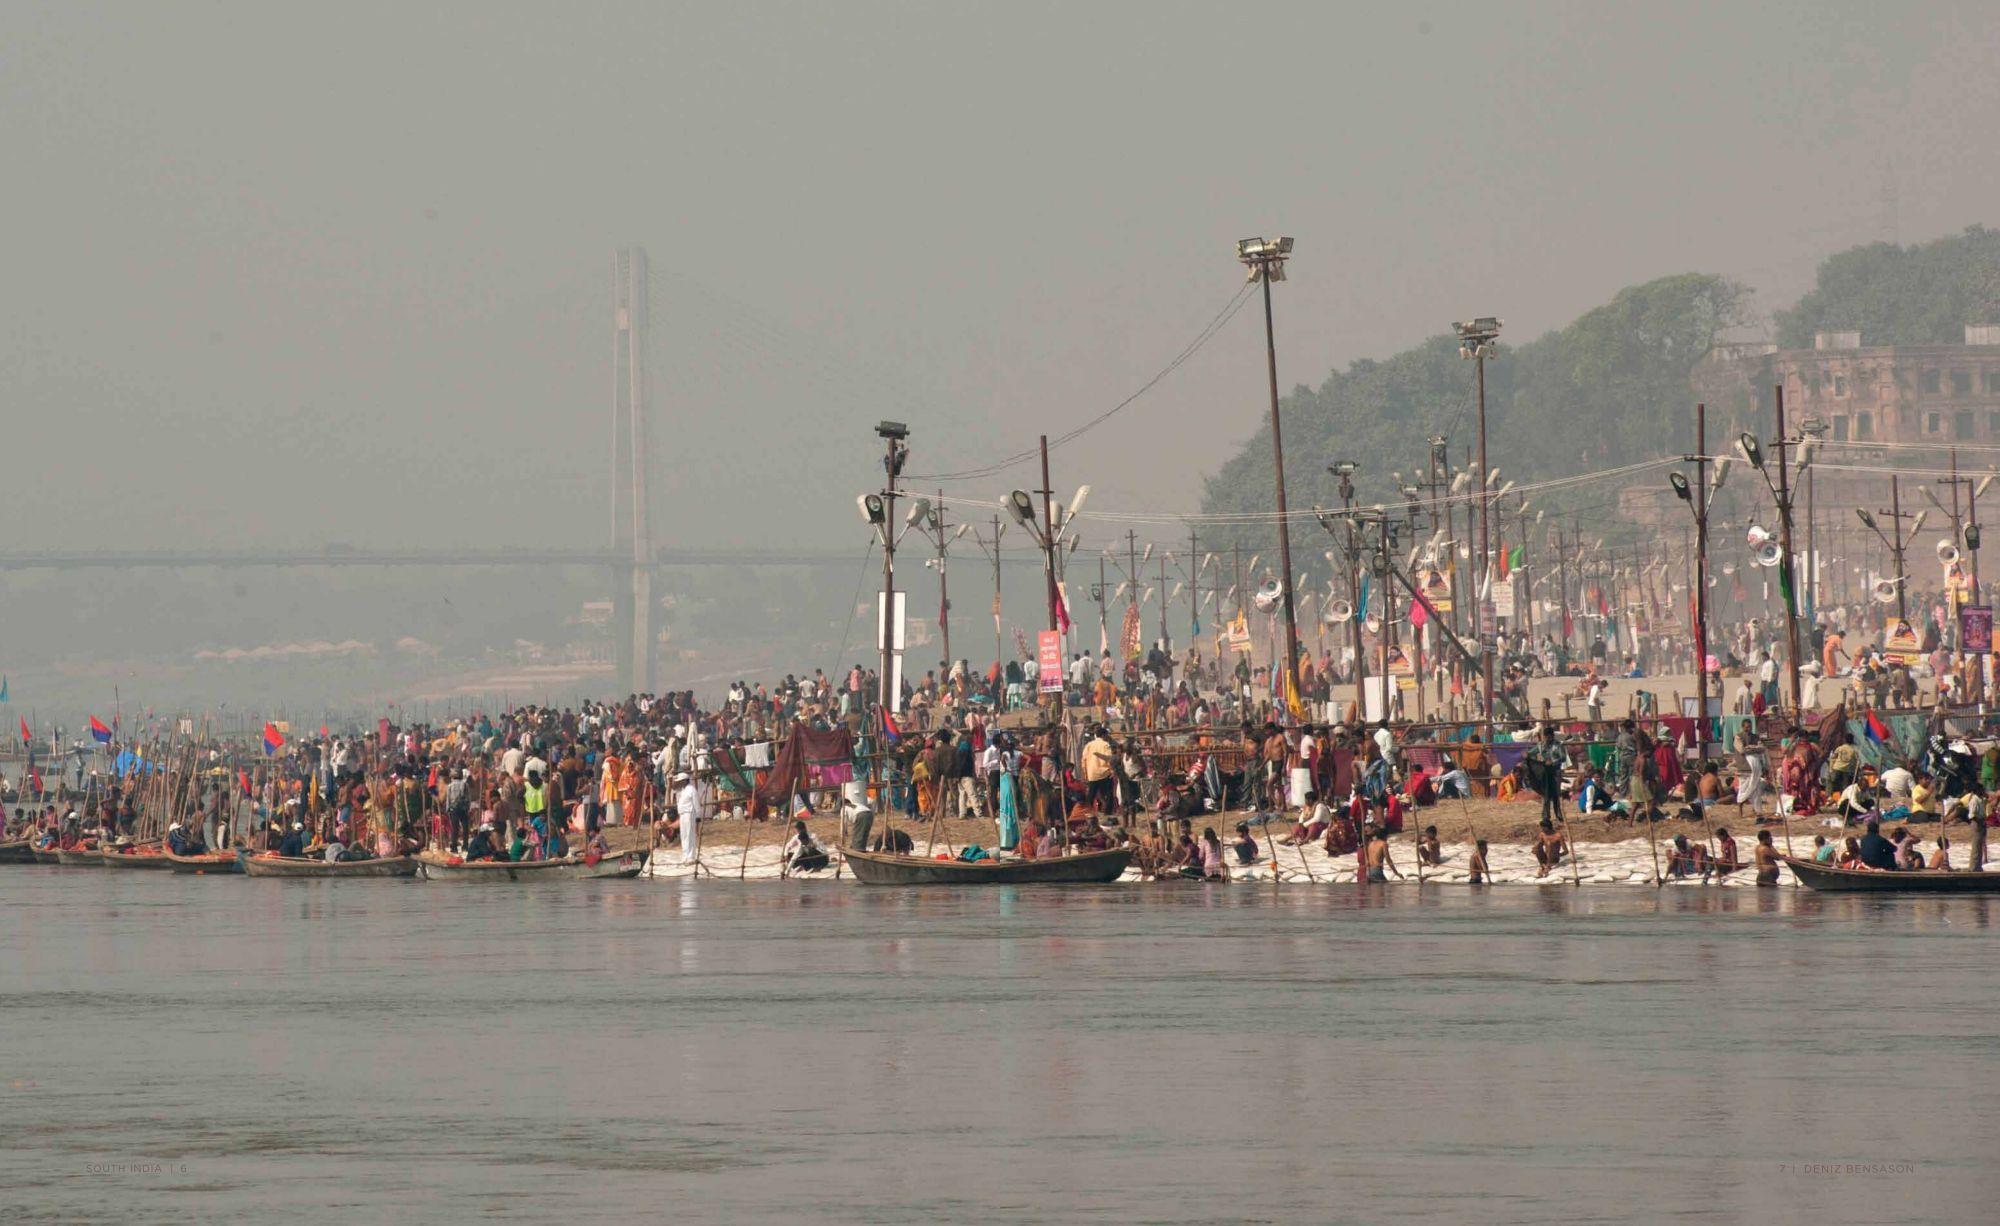 Pages 8-9: Kumbh Mela Festivities in the Ganges River in Allahabad